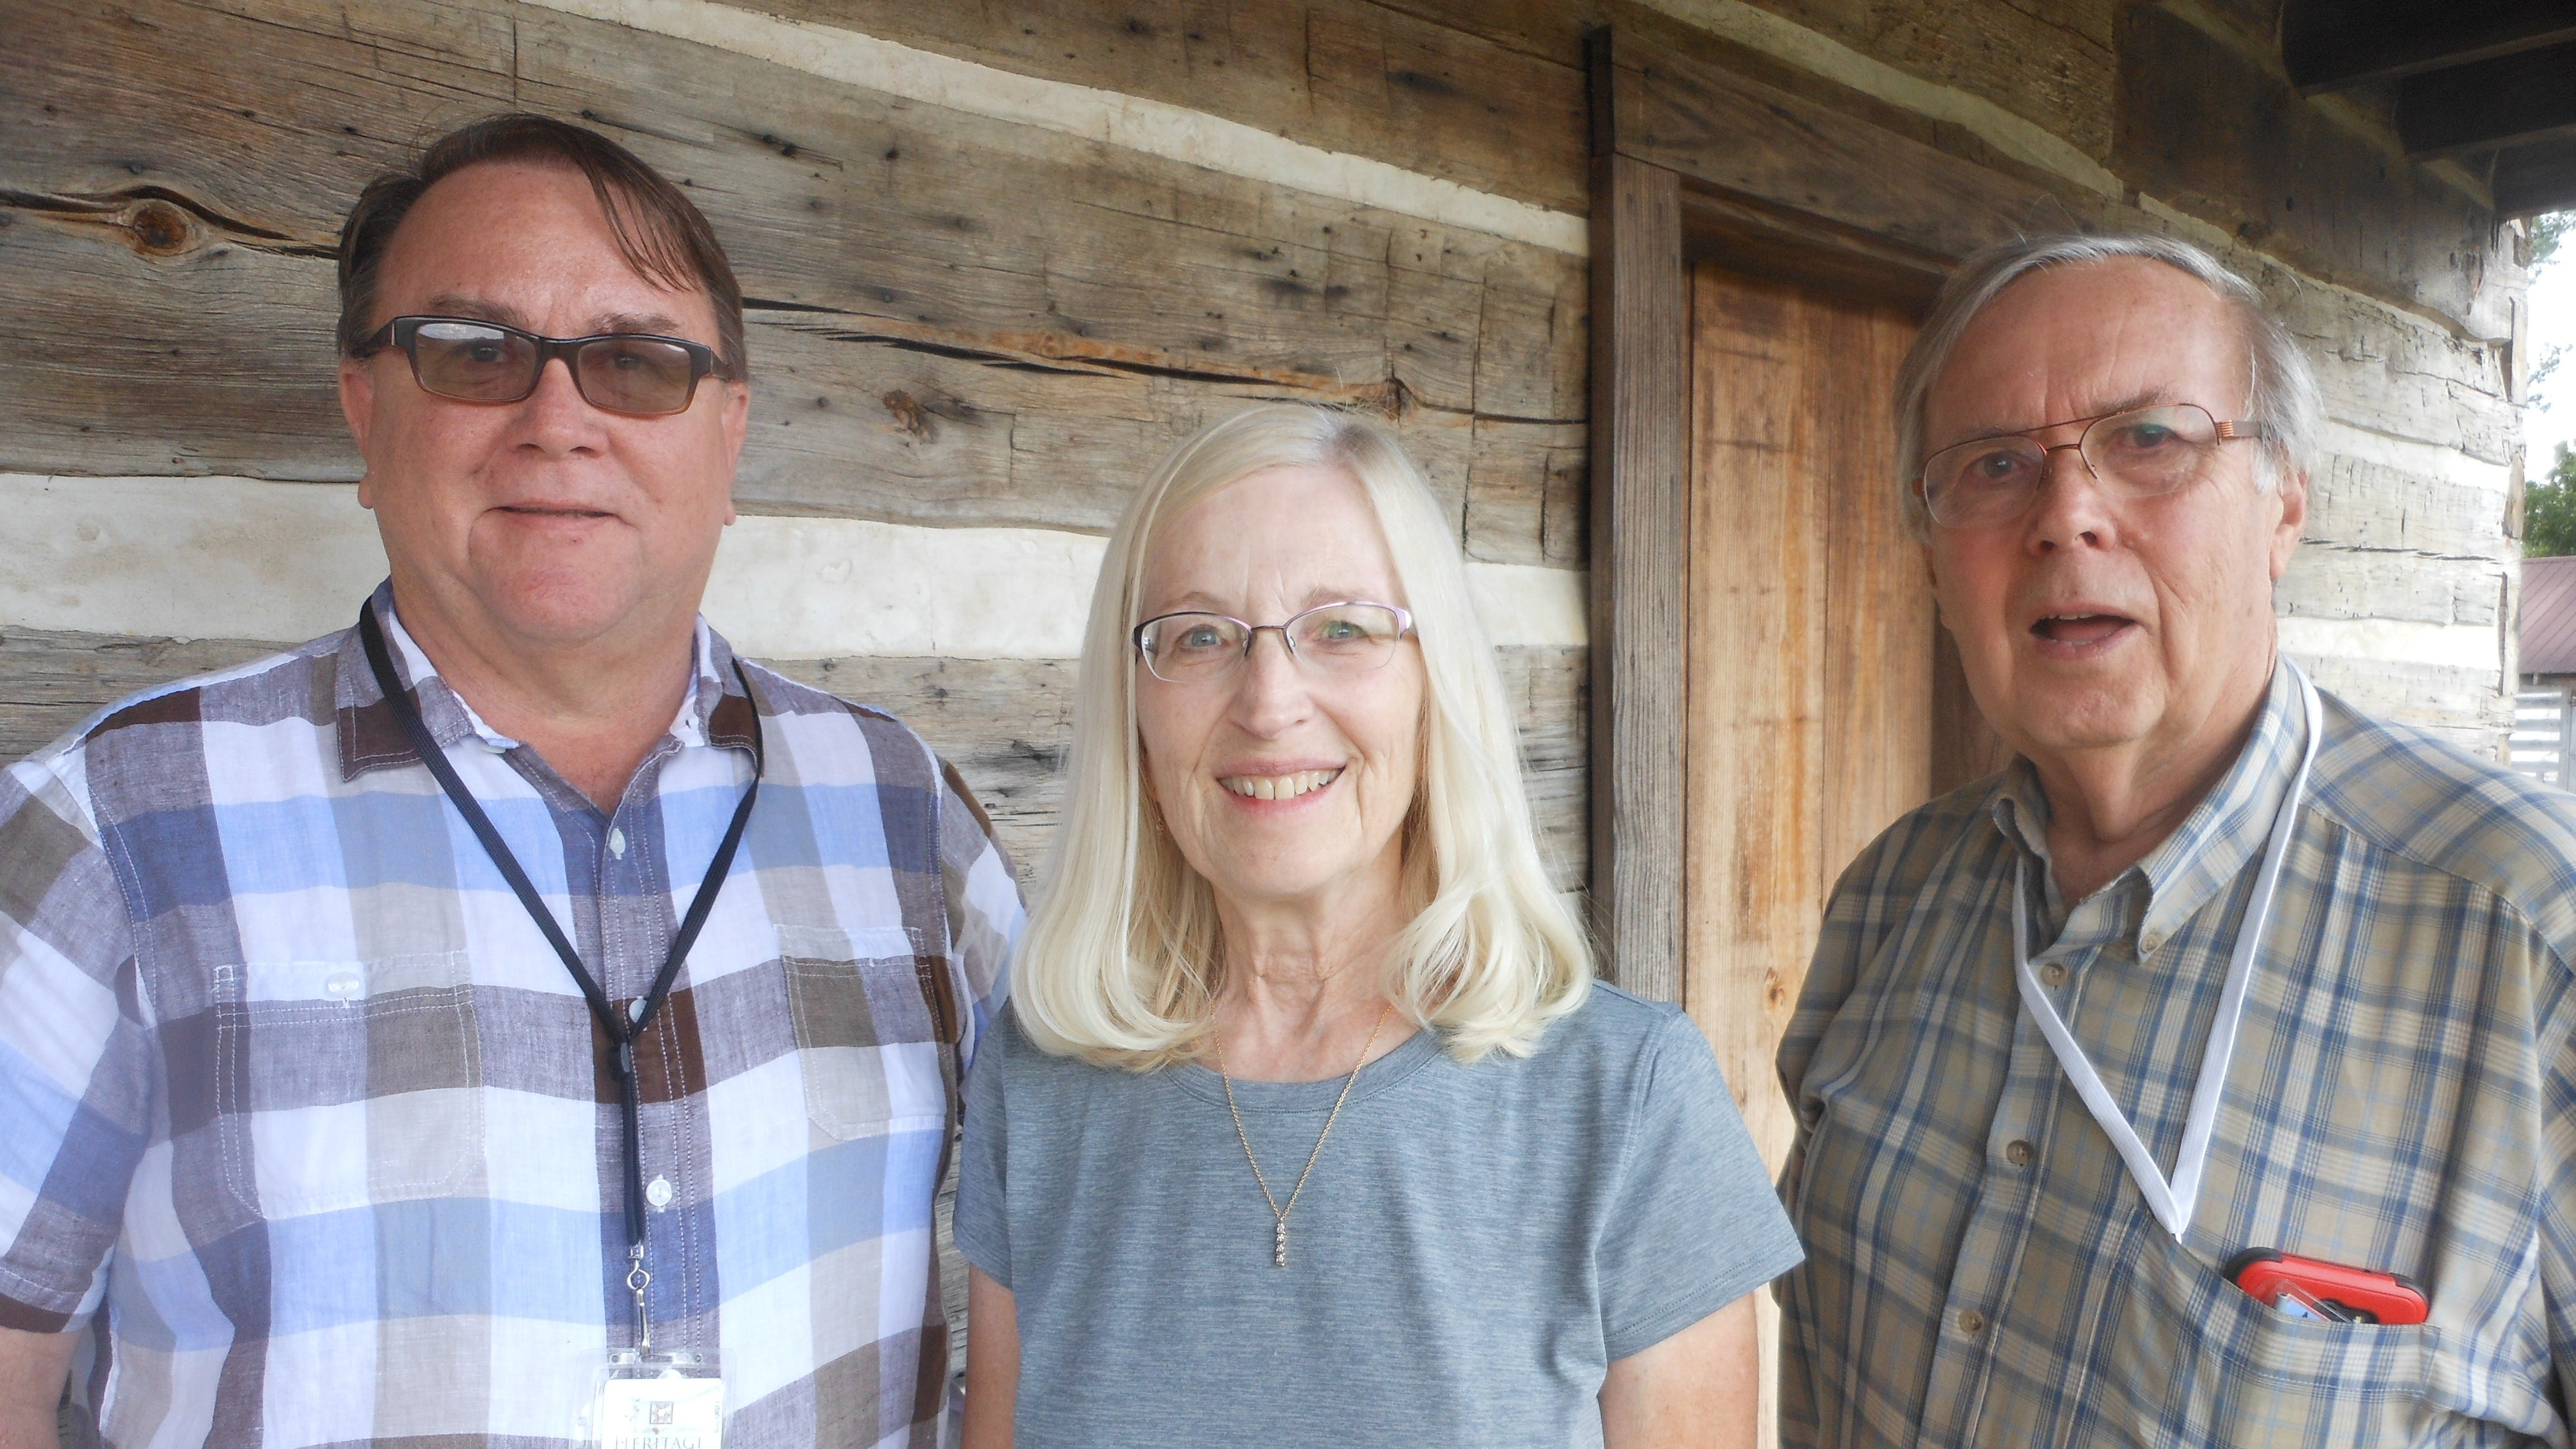 Marlon Mowdy (left), Historic Site Manager at the Jacob Wolf House in Norfork, recently discussed the role of the Wolf House in the formation of the Norfork congregation of Norfork United Methodist Church with Lerene Salisbury, Worship Chairperson at NUMC, and Ray Bachman, Pastor at NUMC.